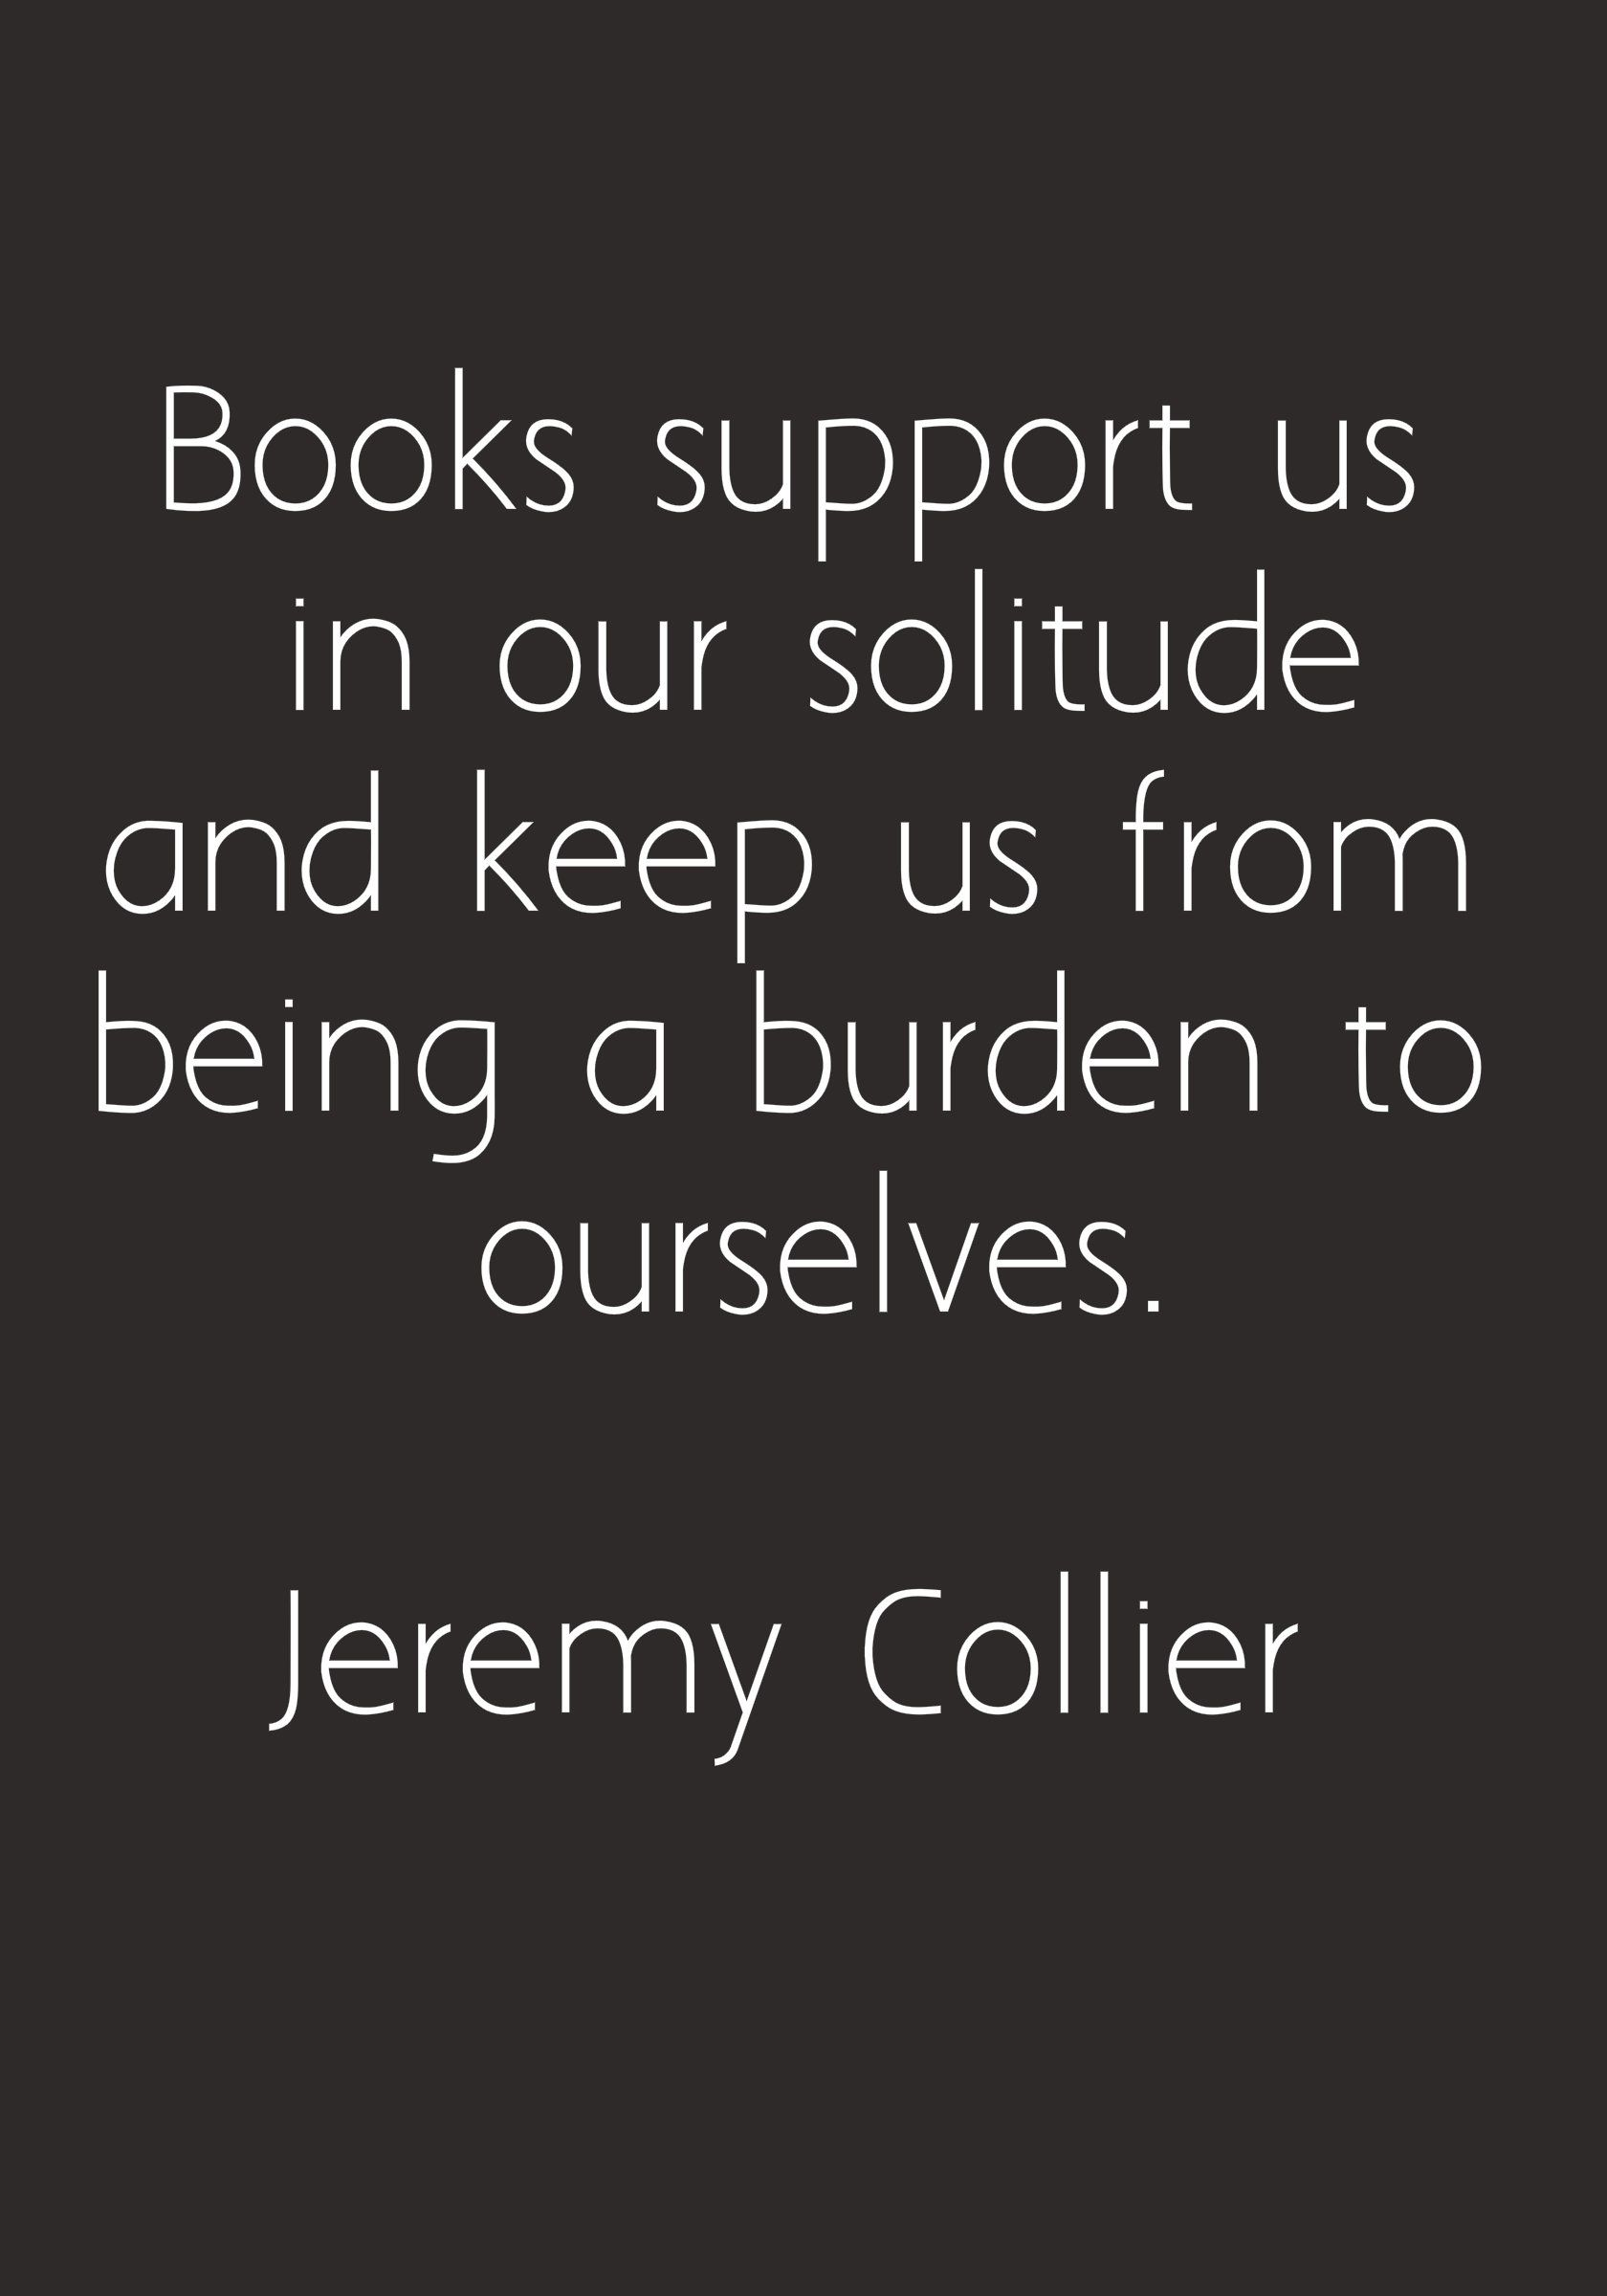 Quotes On Solitude Books Support Us In Our Solitude And Keep Us From Being A Burden